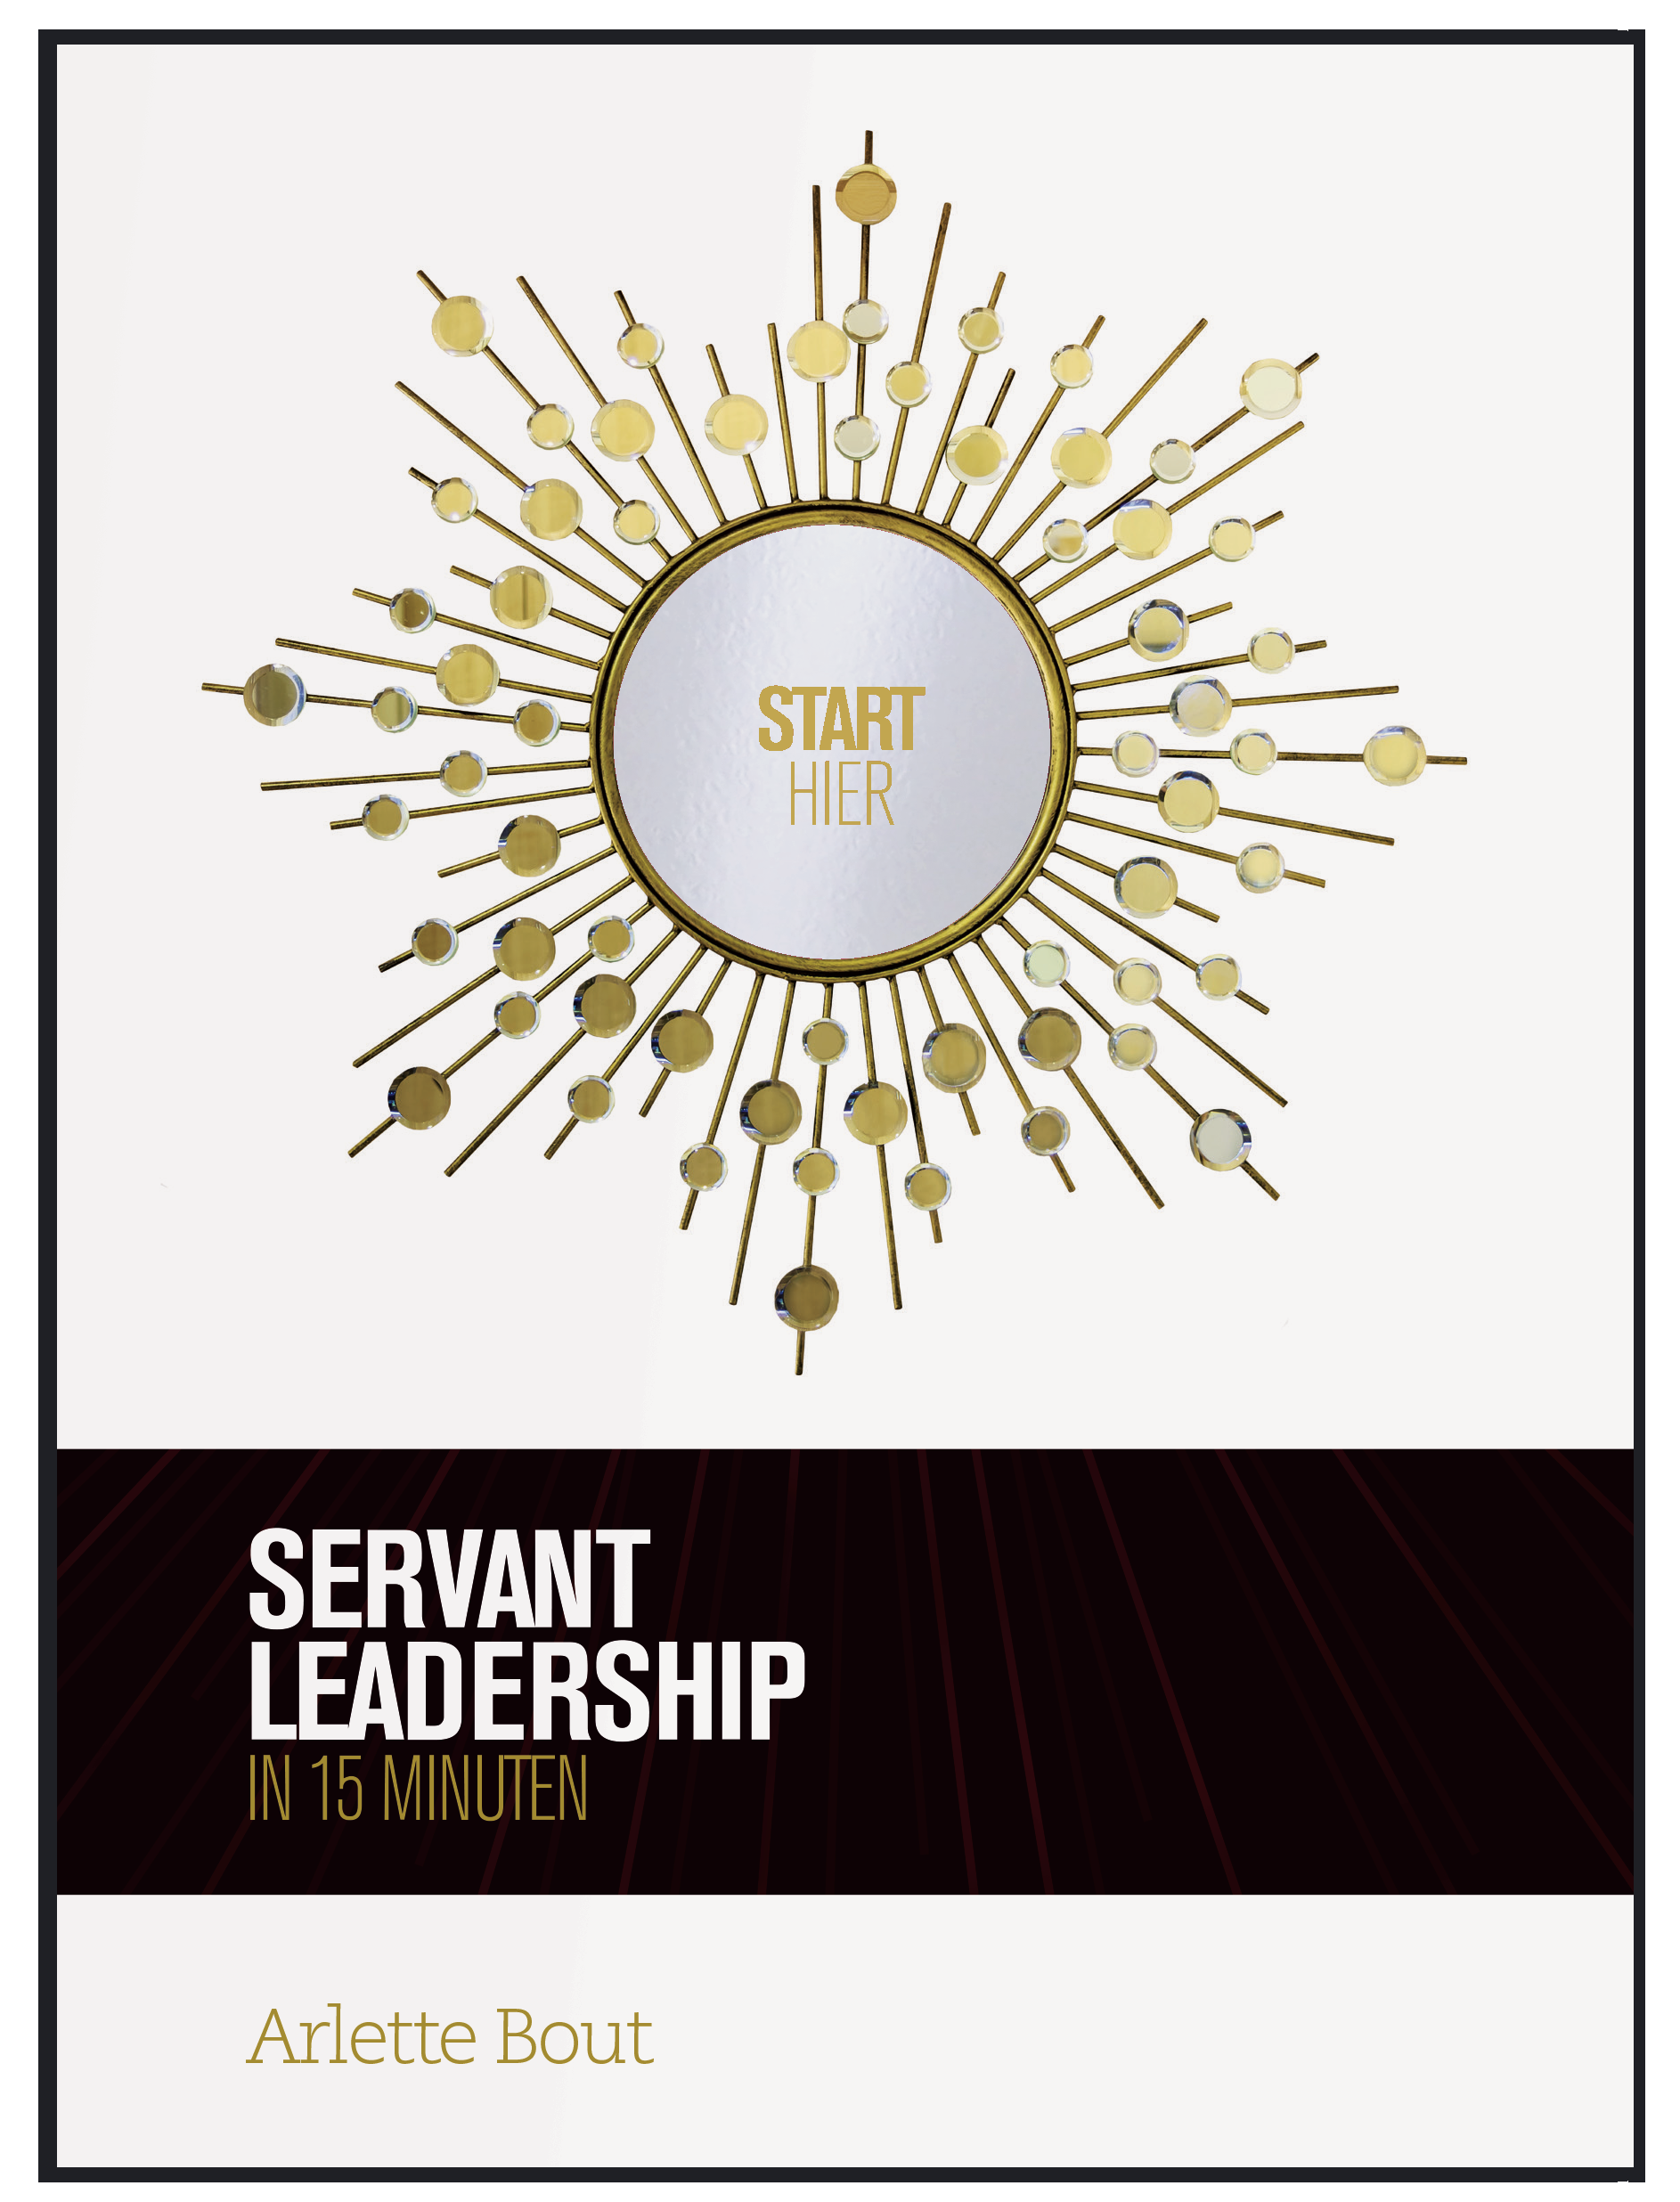 """greenleaf servant as leader essay Servant leadership what is it the phrase """"servant leadership"""" was coined by robert k greenleaf in the servant as a leader, an essay he first published in 1970."""